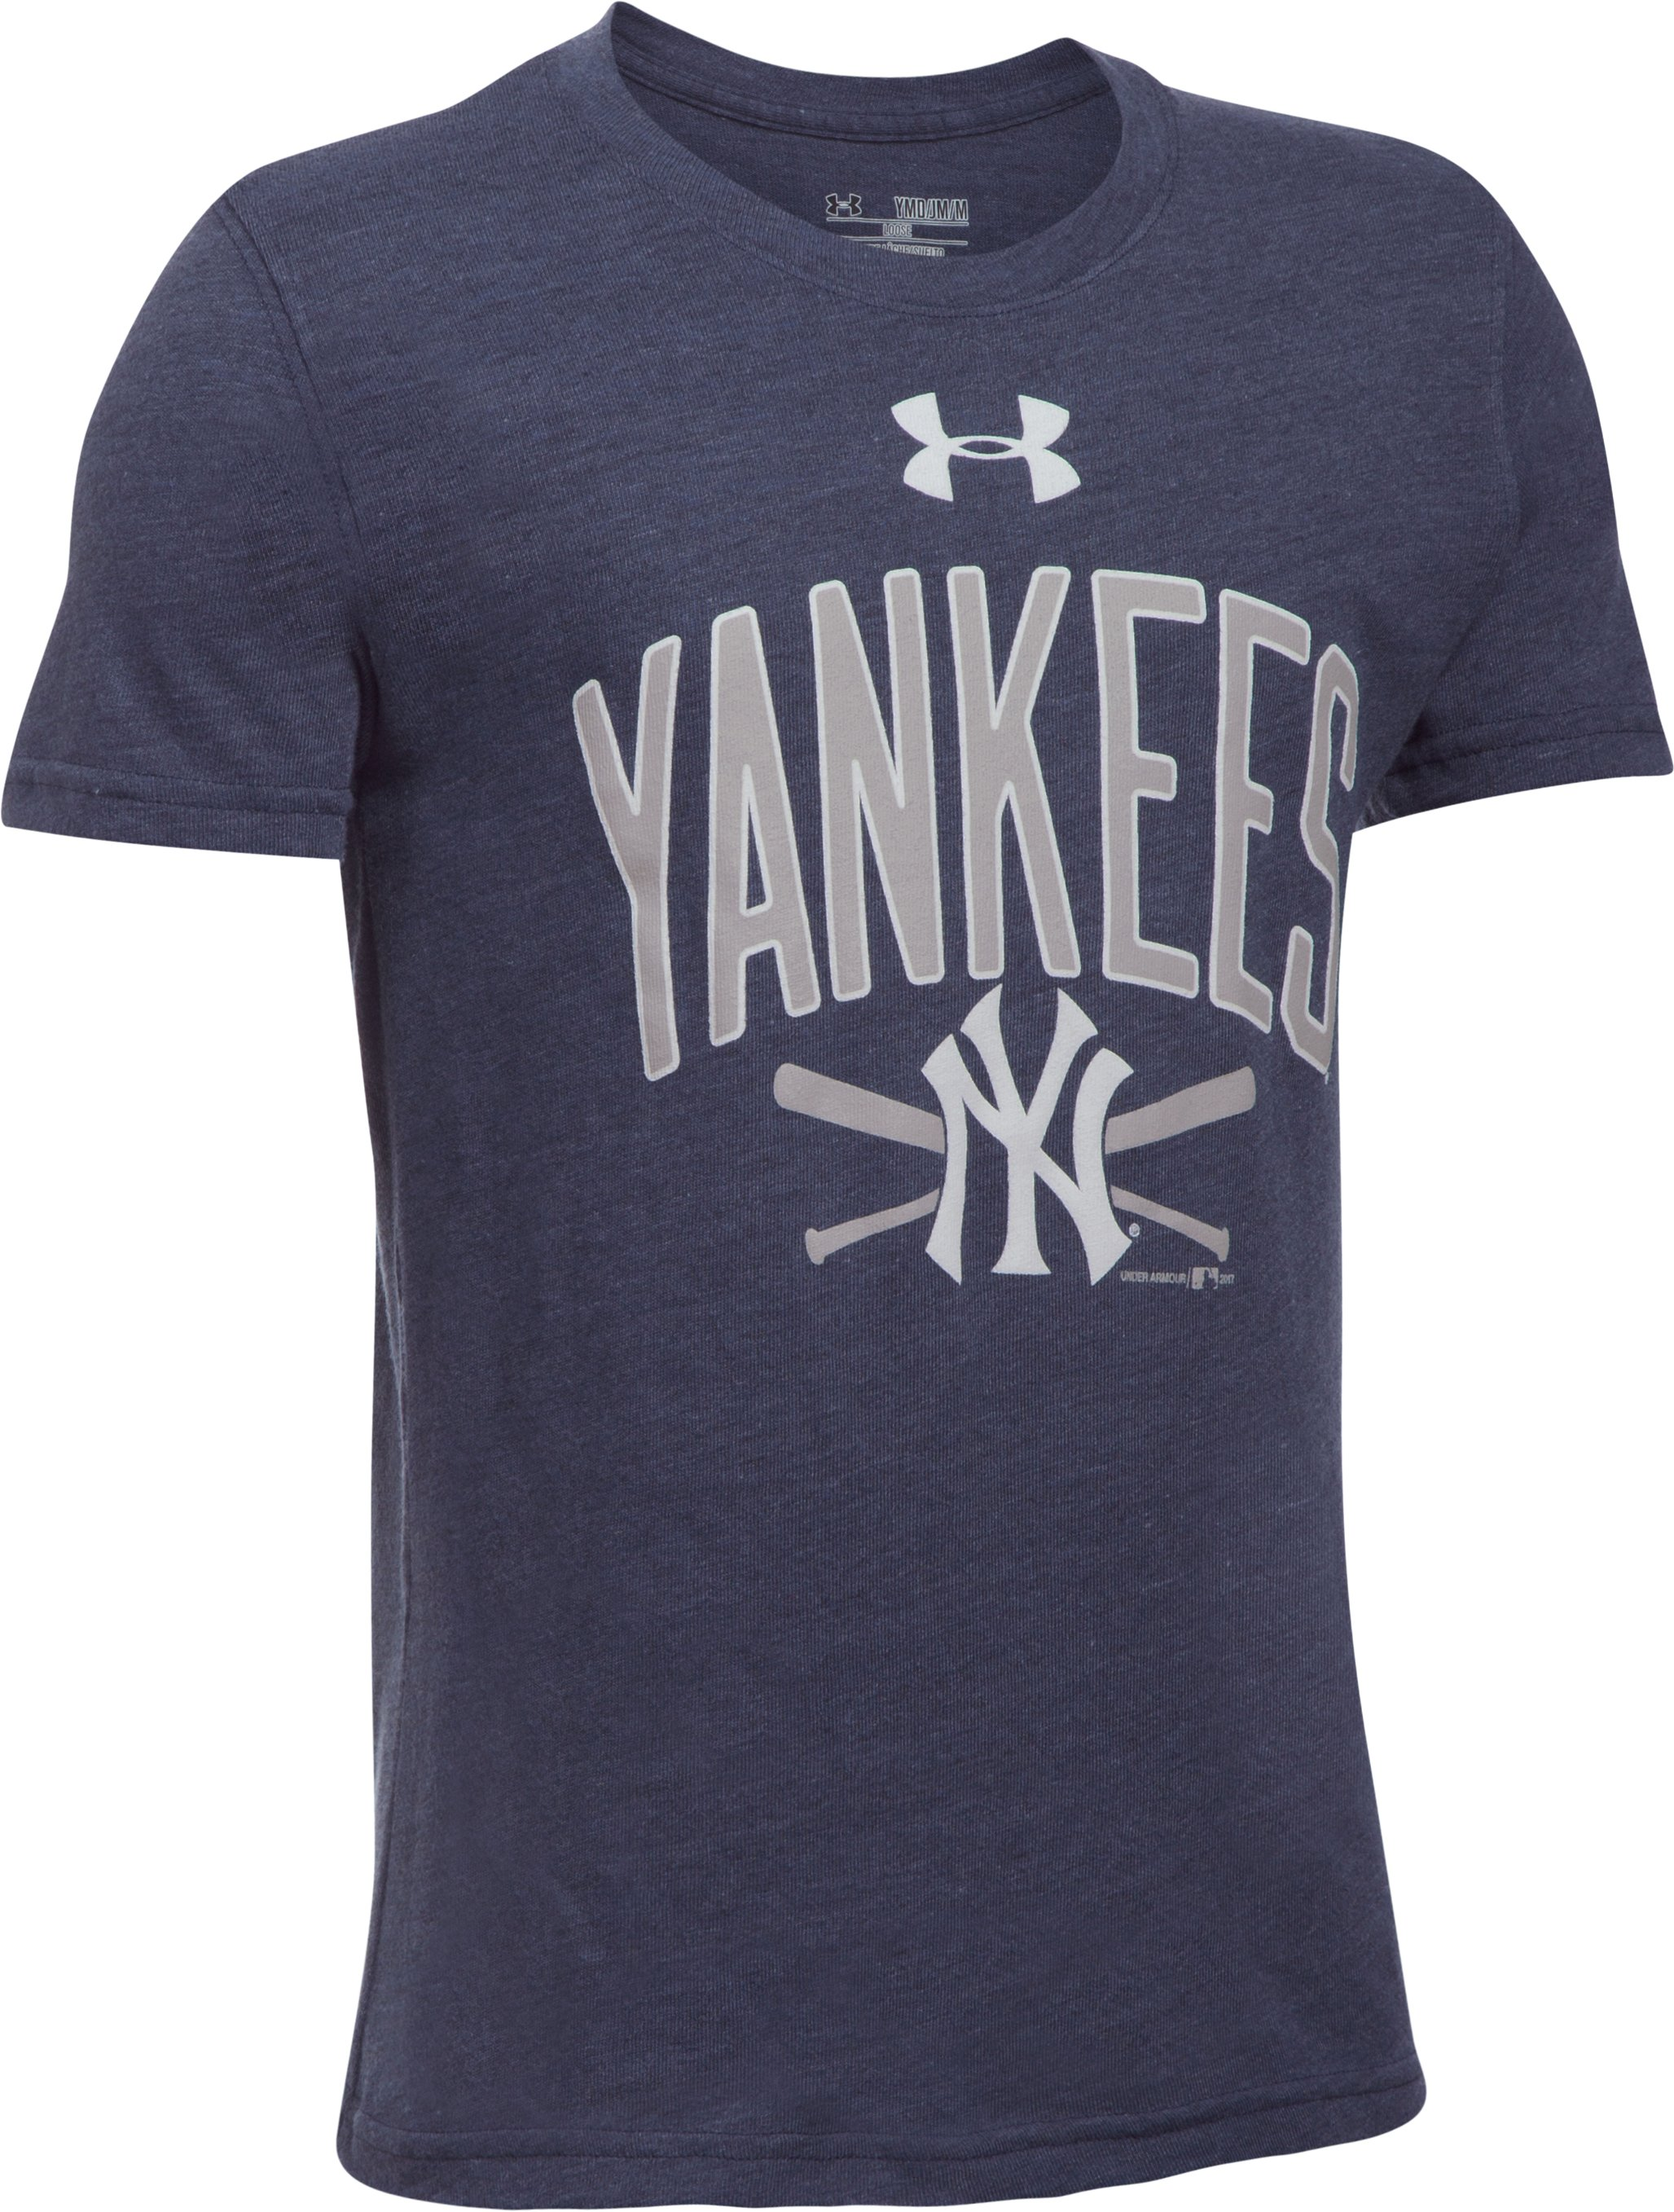 Boys' New York Yankees Tri-Blend T-Shirt, Midnight Navy